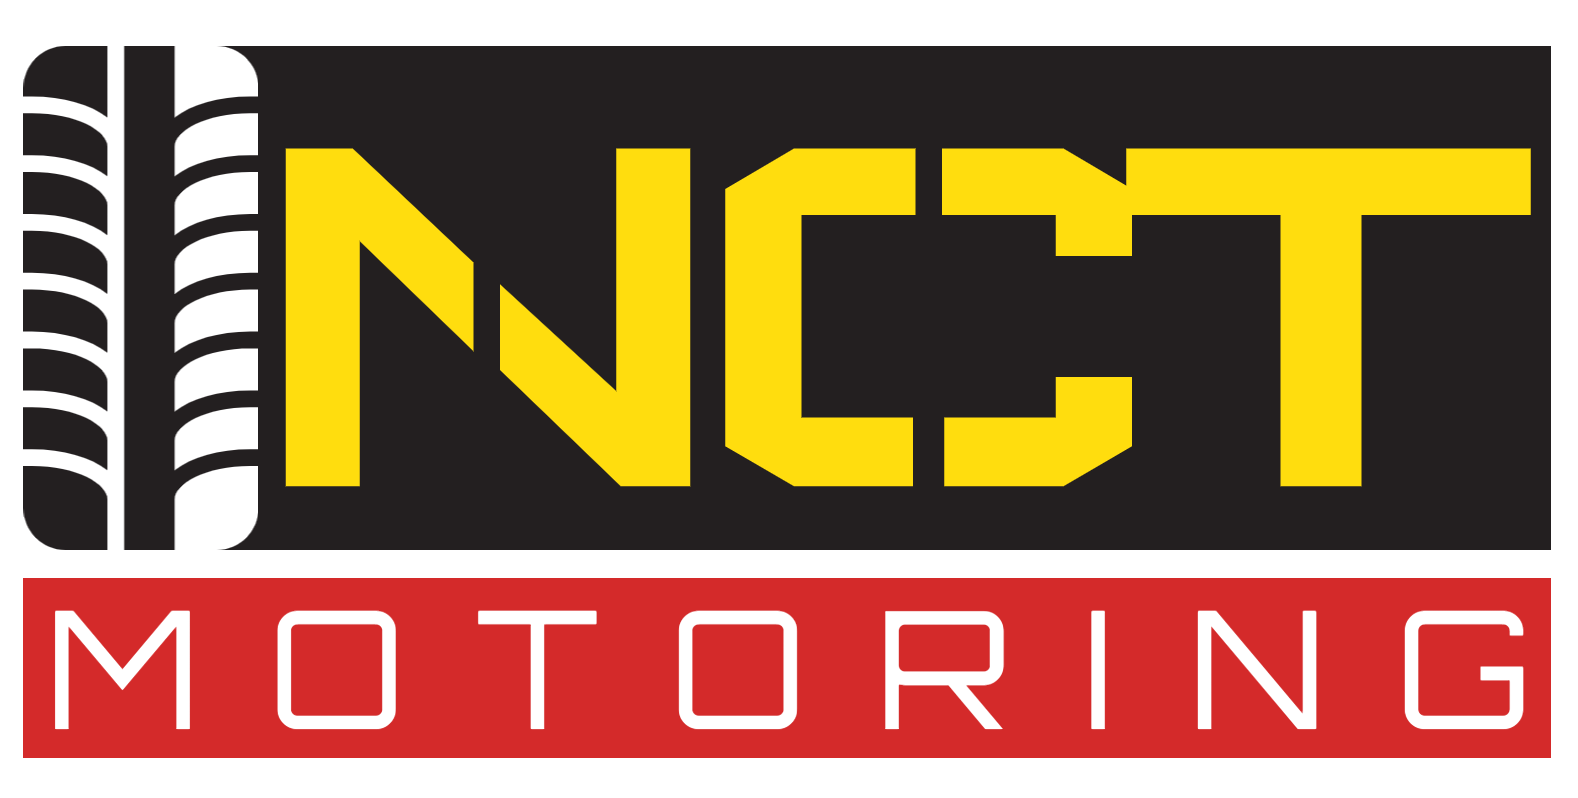 Custom Wheels & Discount Tires at Low Wholesale Prices! - NCT Motoring